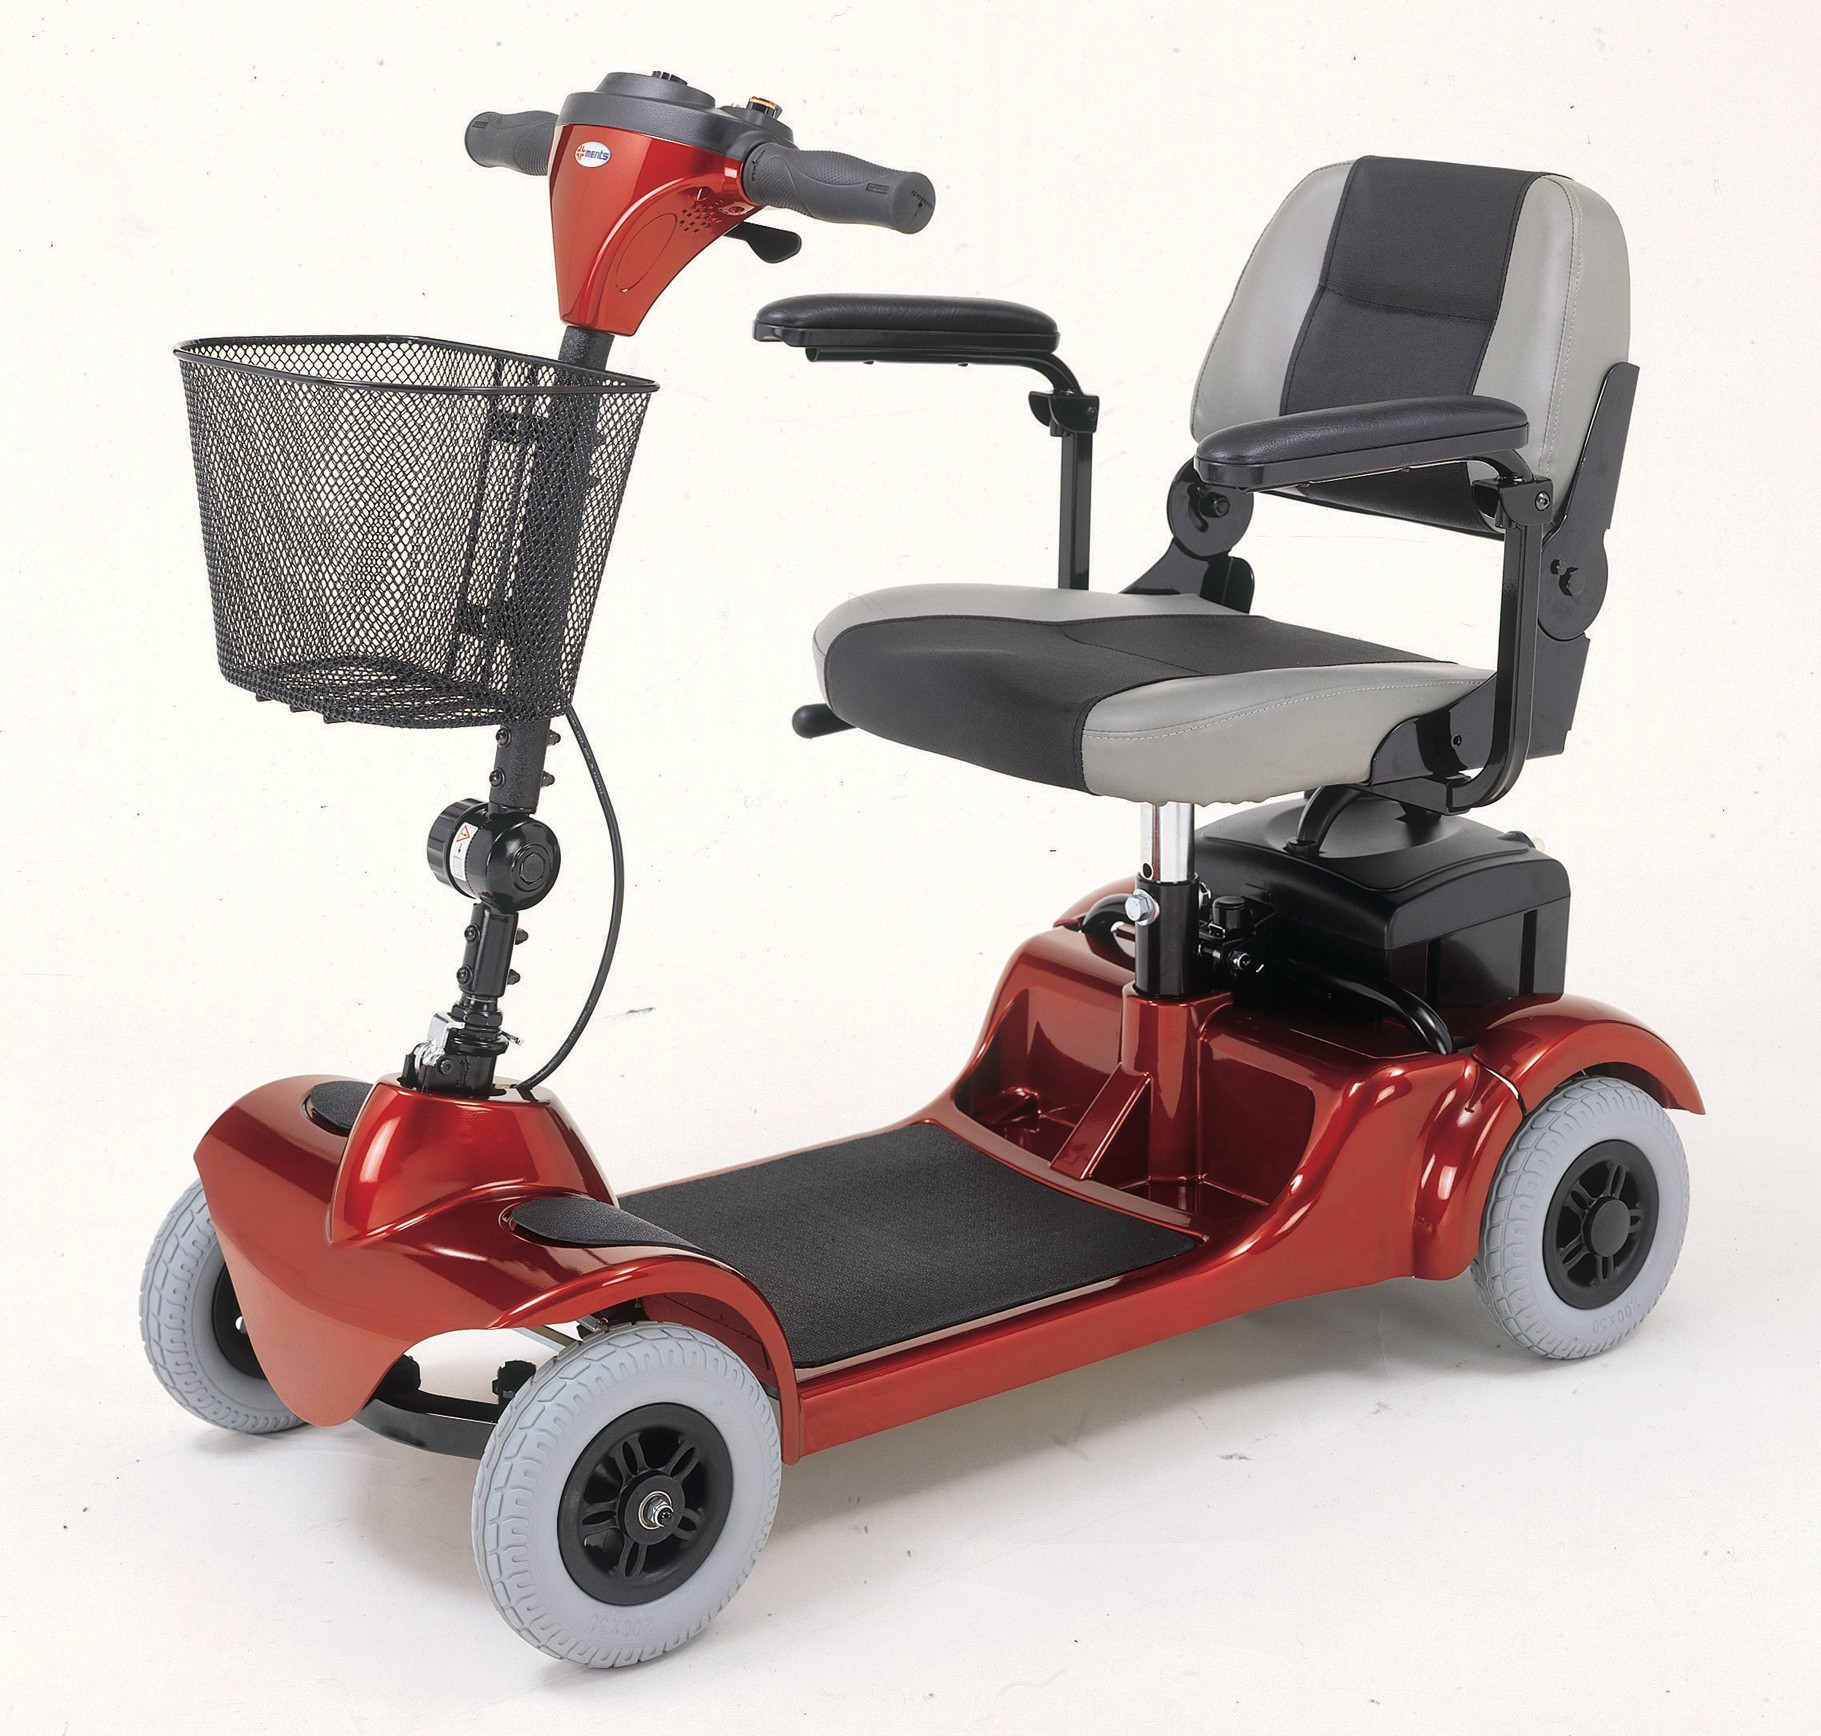 merits health mini coupe 3 wheel scooter 4 wheel travel. Black Bedroom Furniture Sets. Home Design Ideas